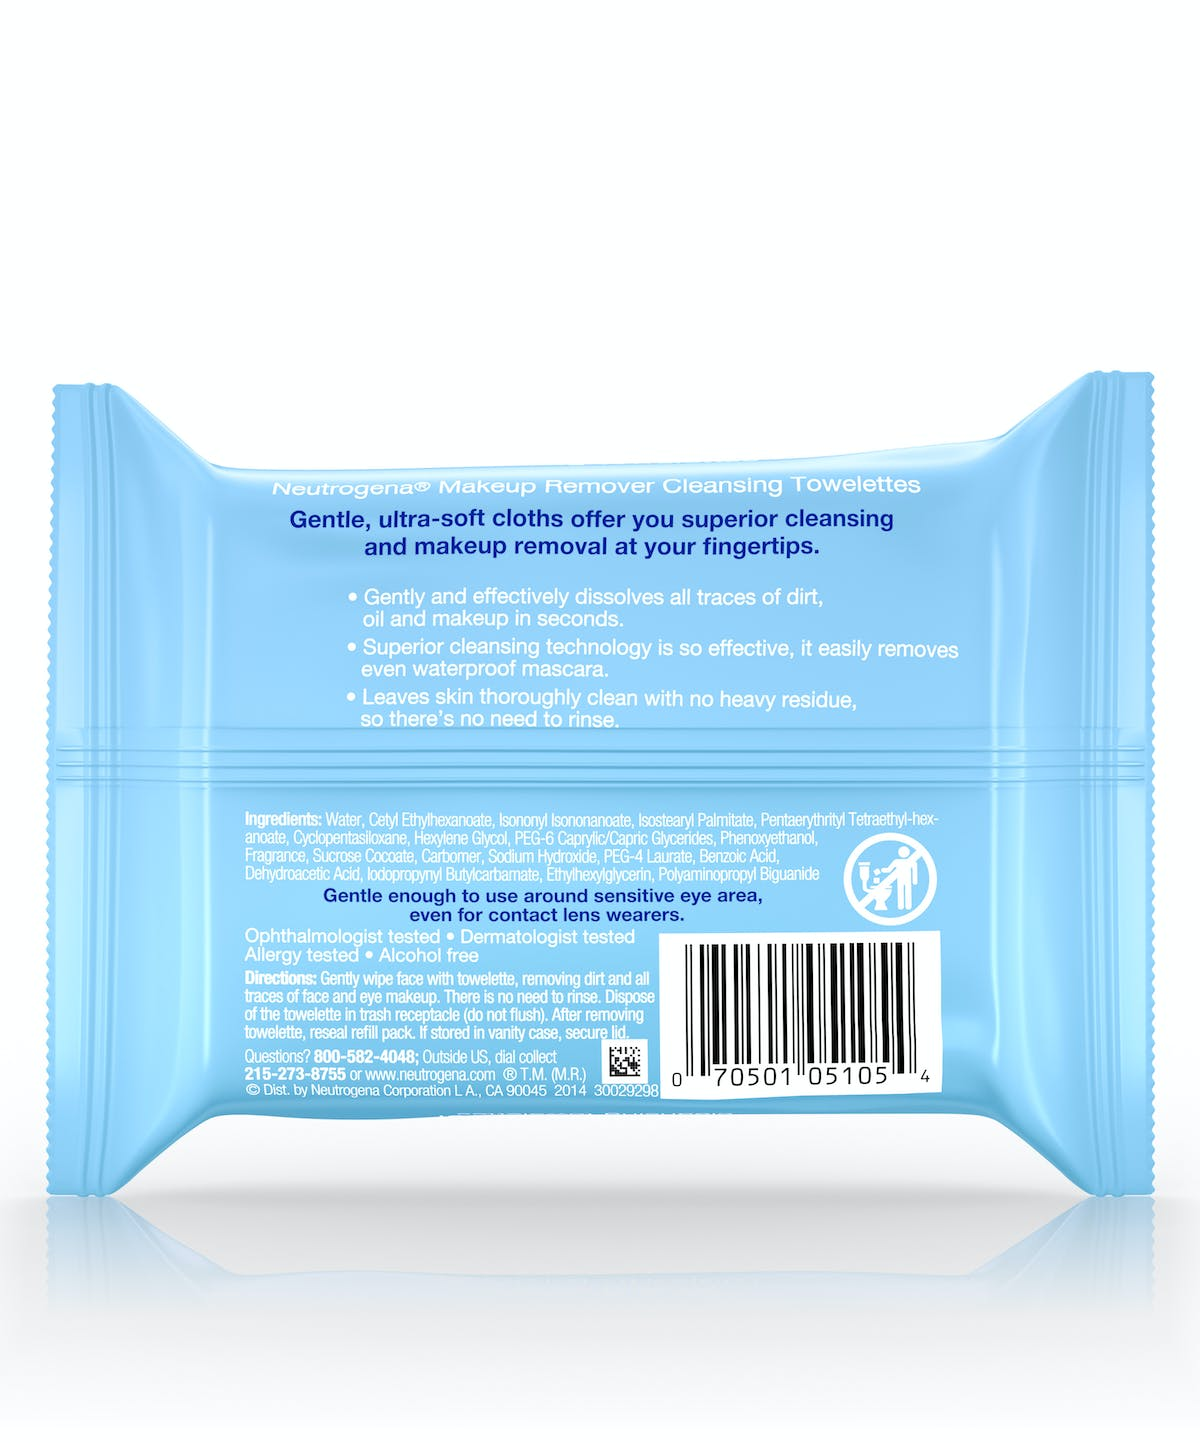 ... Makeup Remover Cleansing Towelettes ...